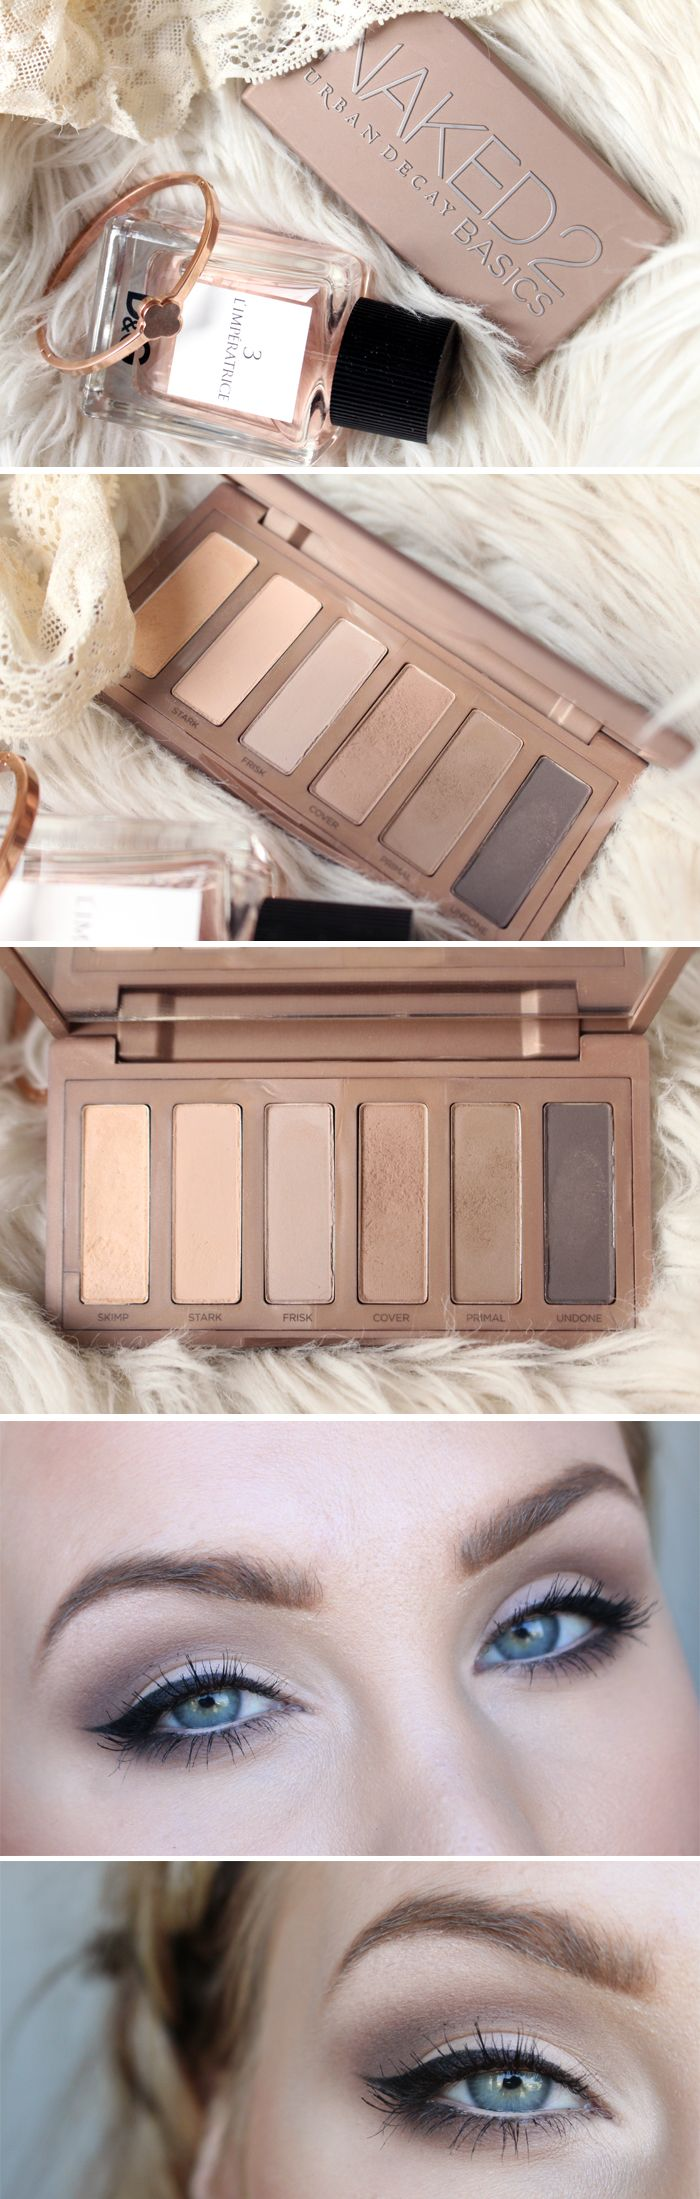 Nude Makeup by Urban Decay - Shop Now